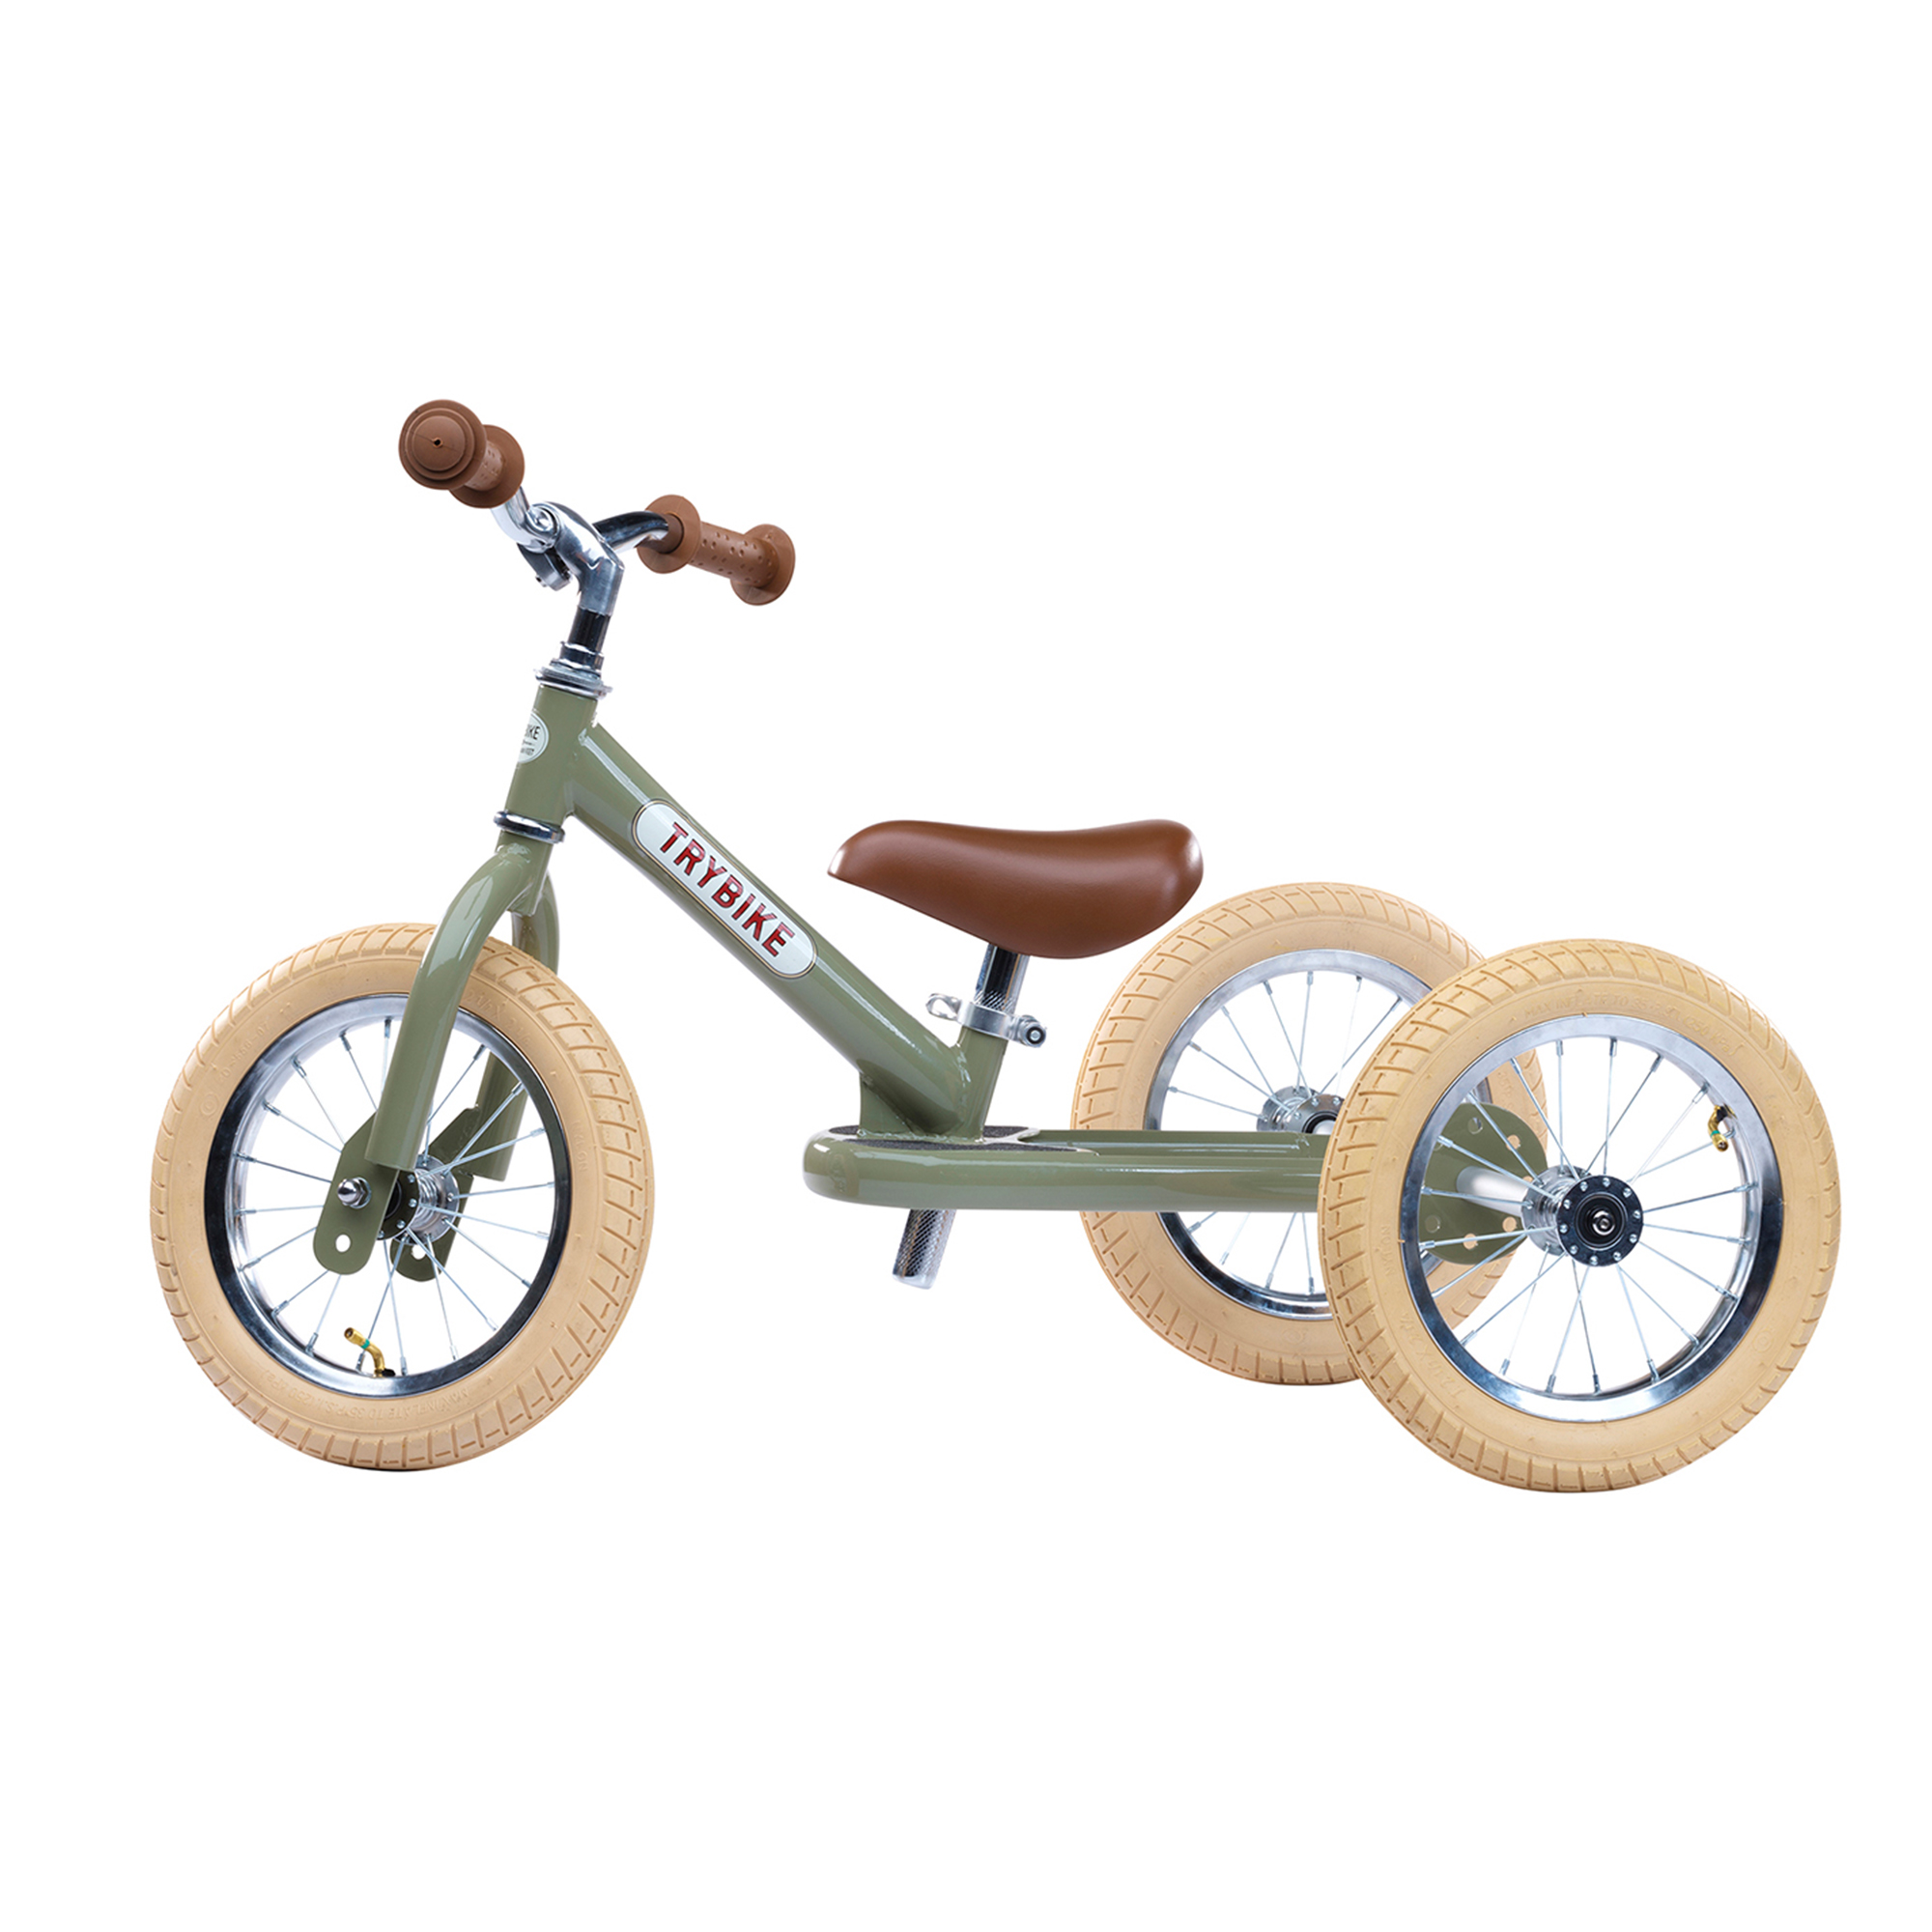 Trybike Steel Vintage 2 In 1 Balance Trike Bike Kid S Toy Swap Subscription Whirli